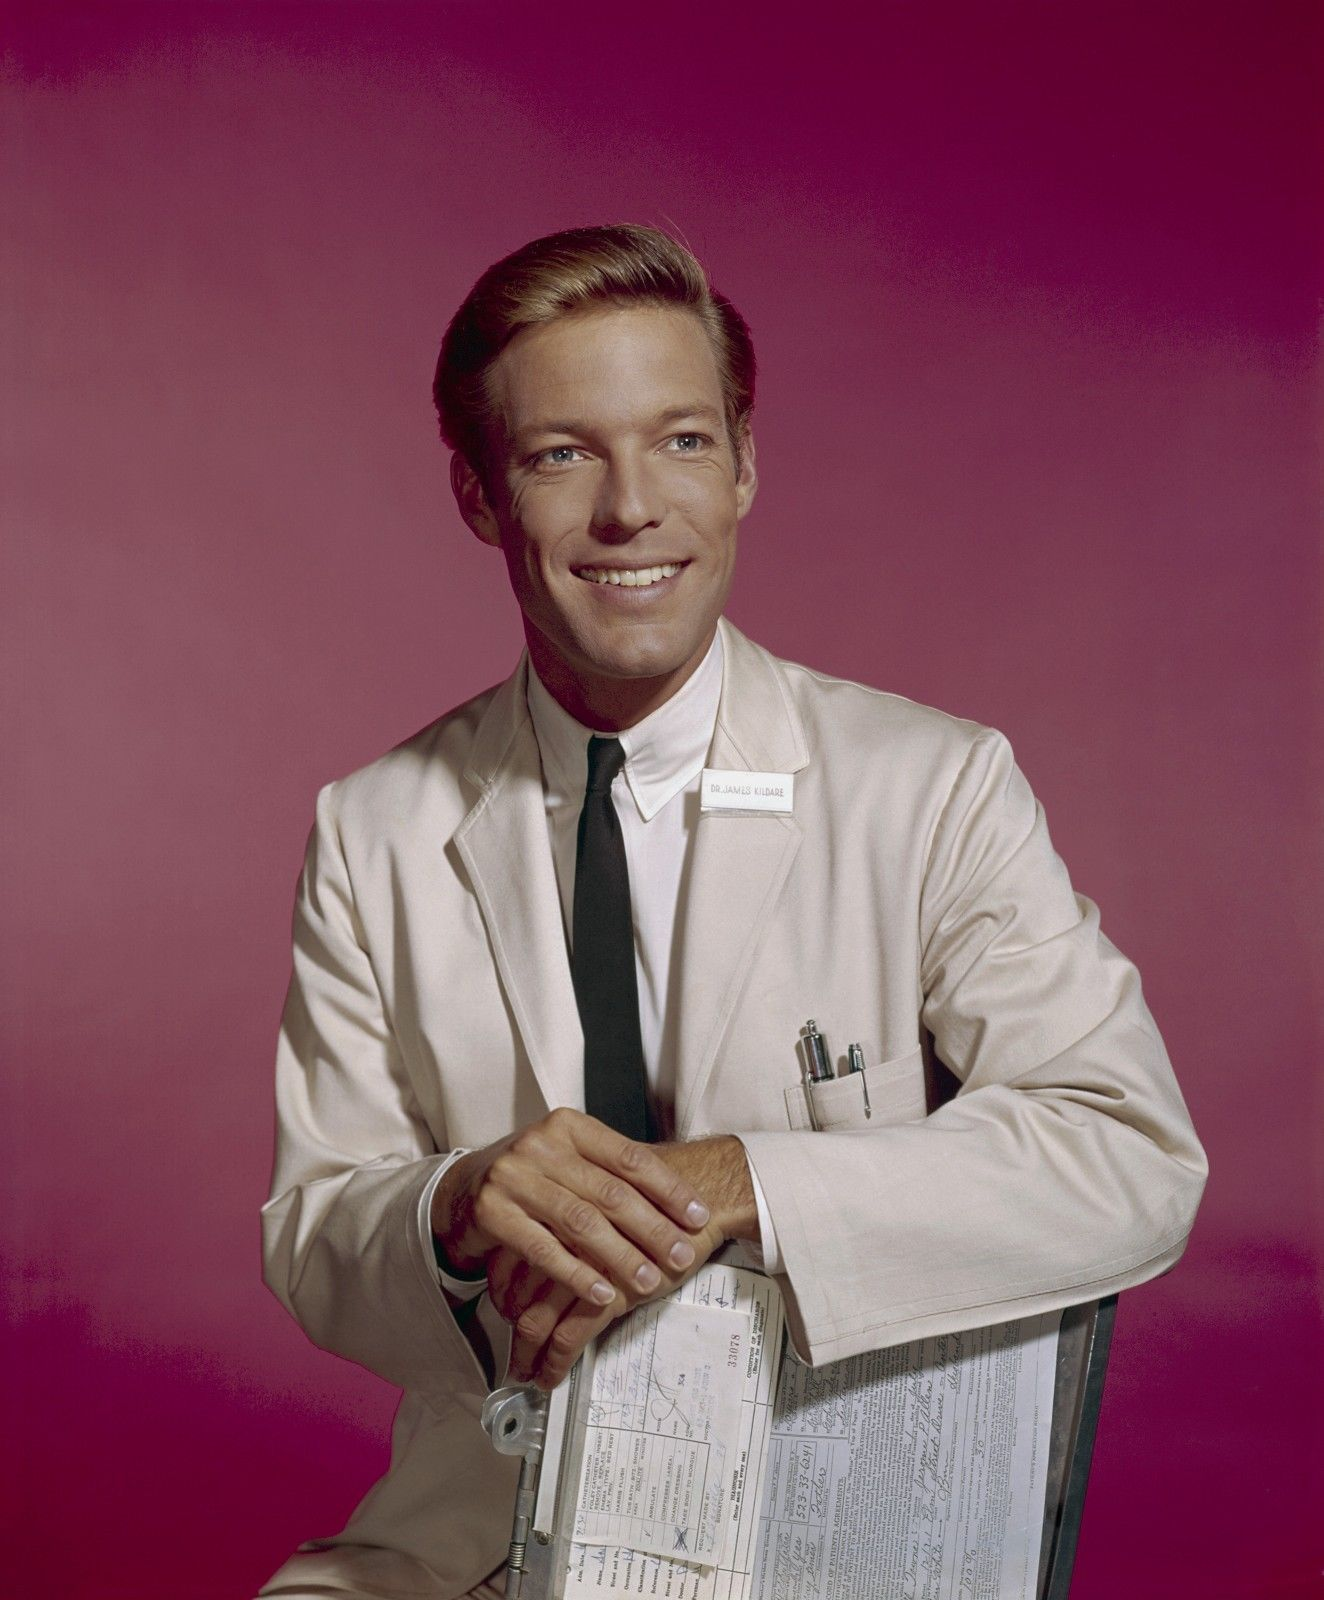 Richard Chamberlain in Dr. Kildare (1961)